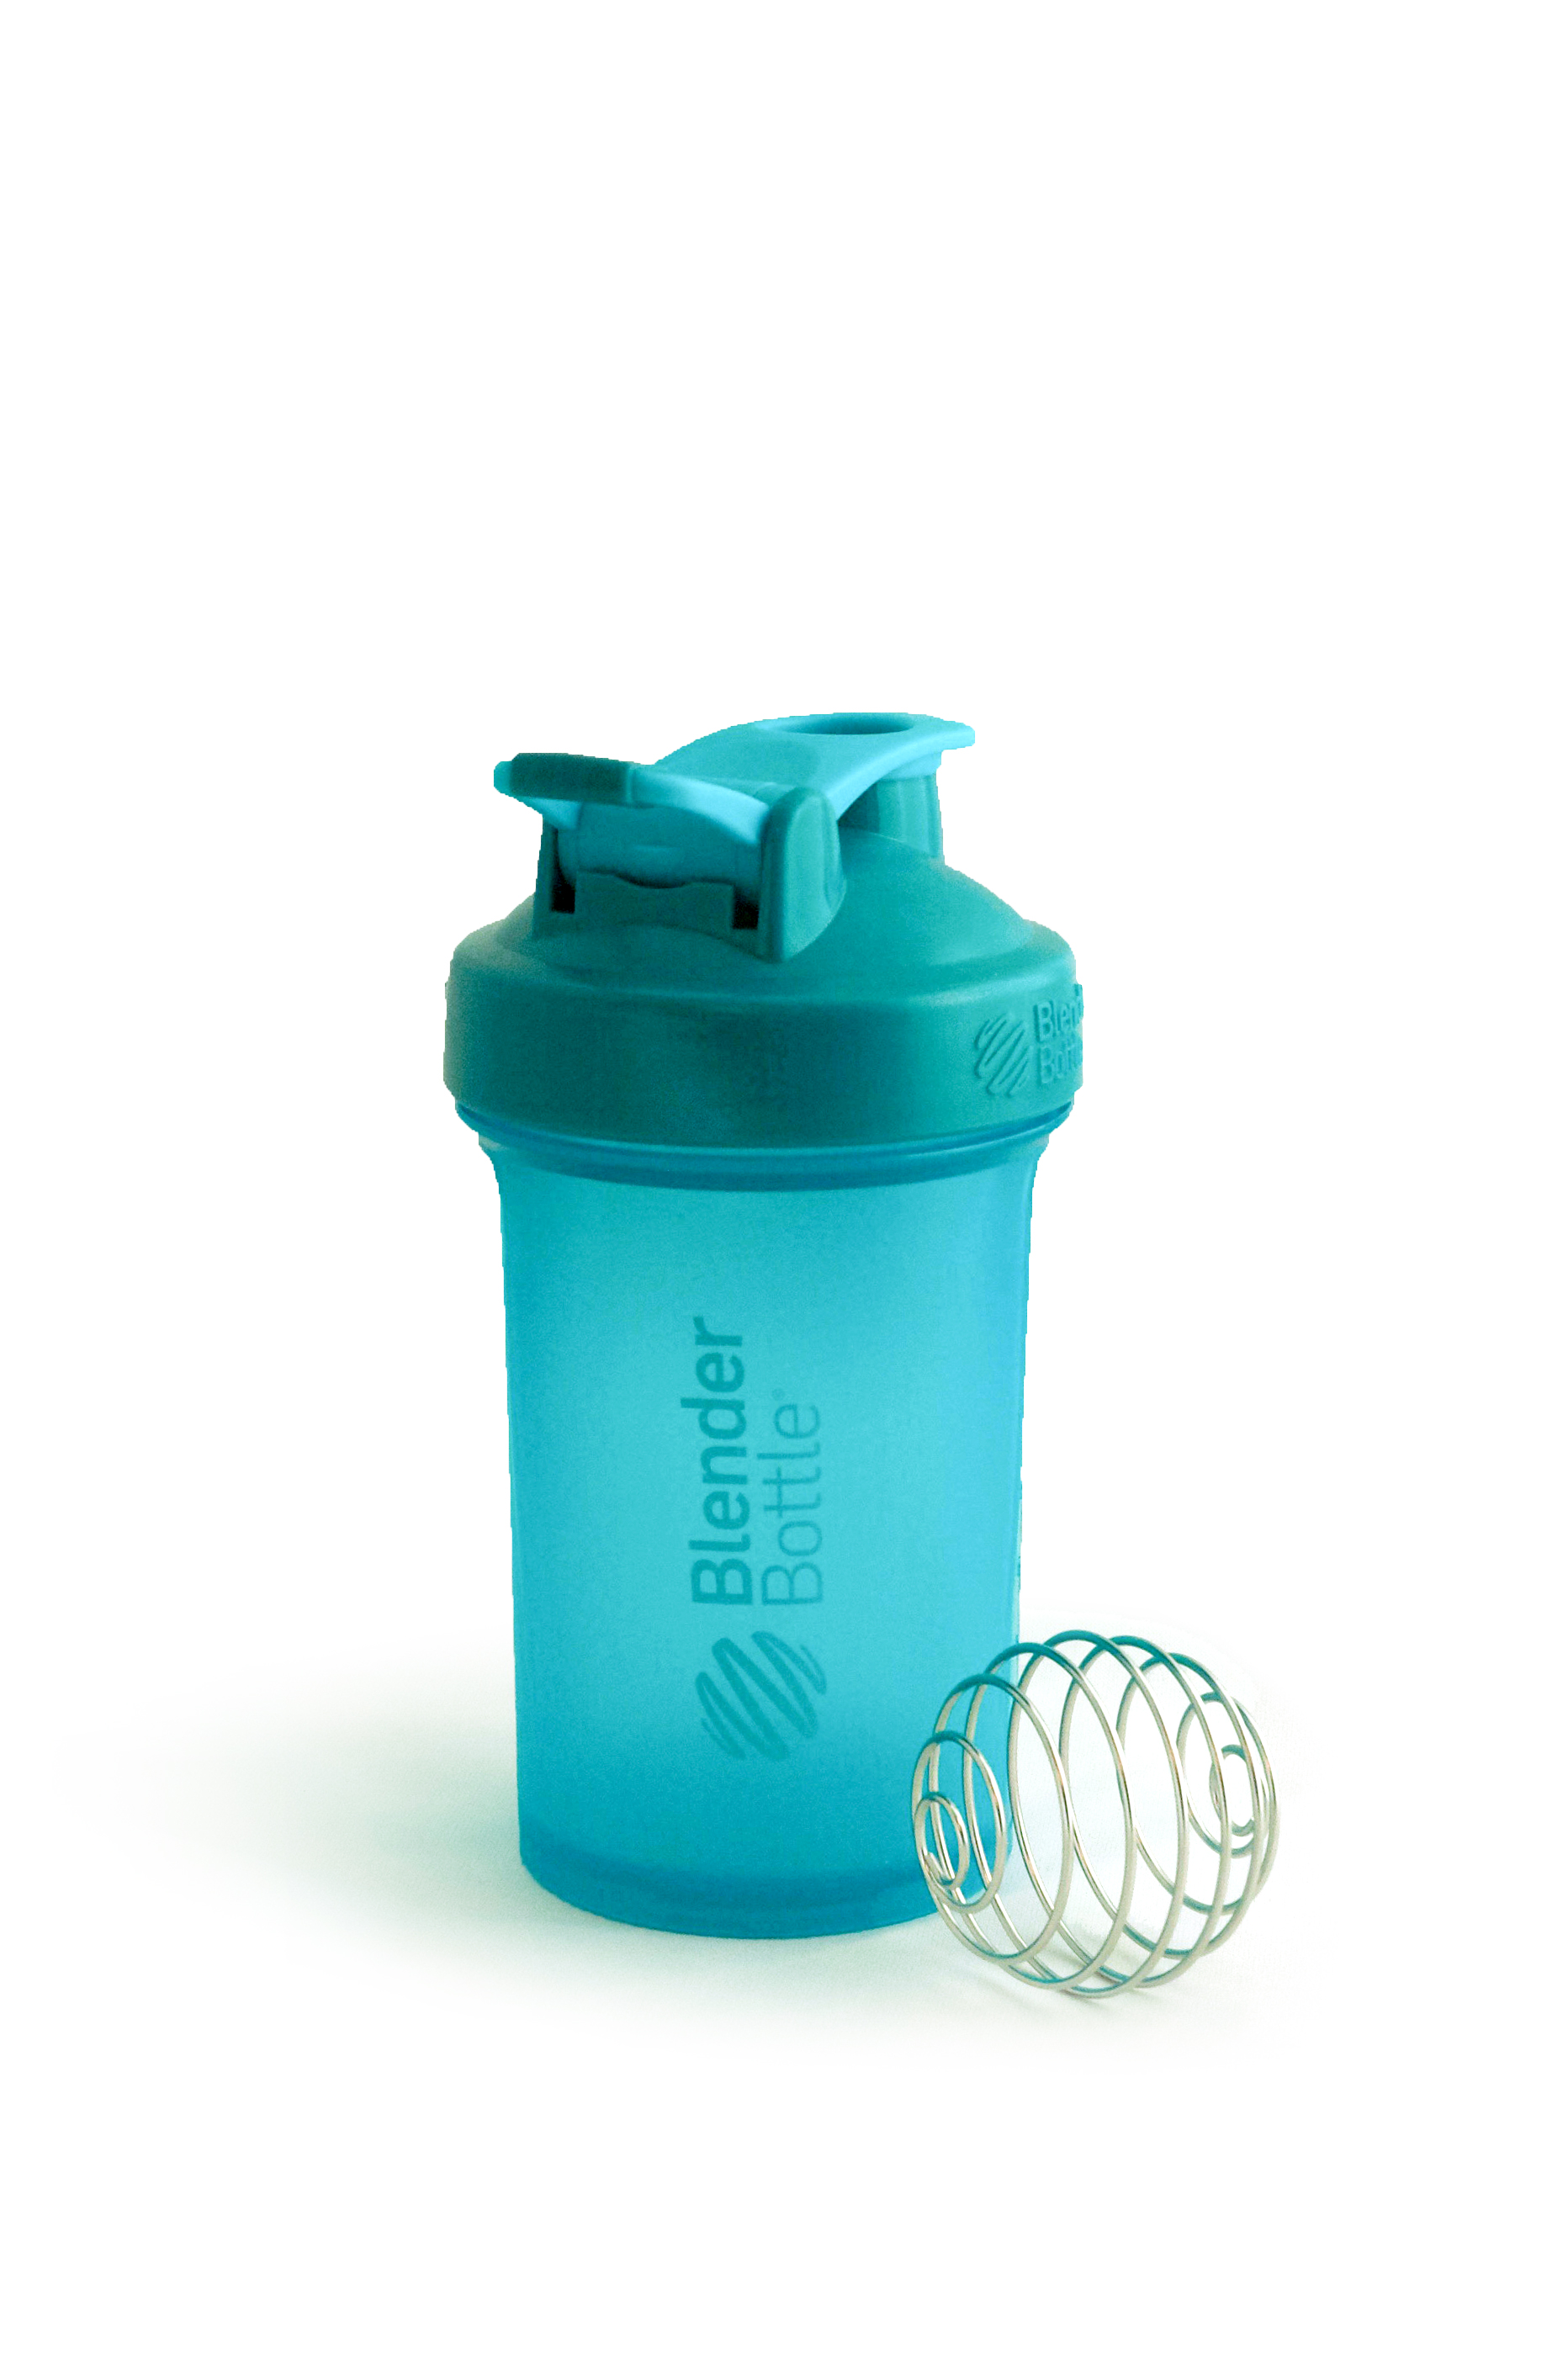 26 oz. Blender Bottle to mix Nutrim